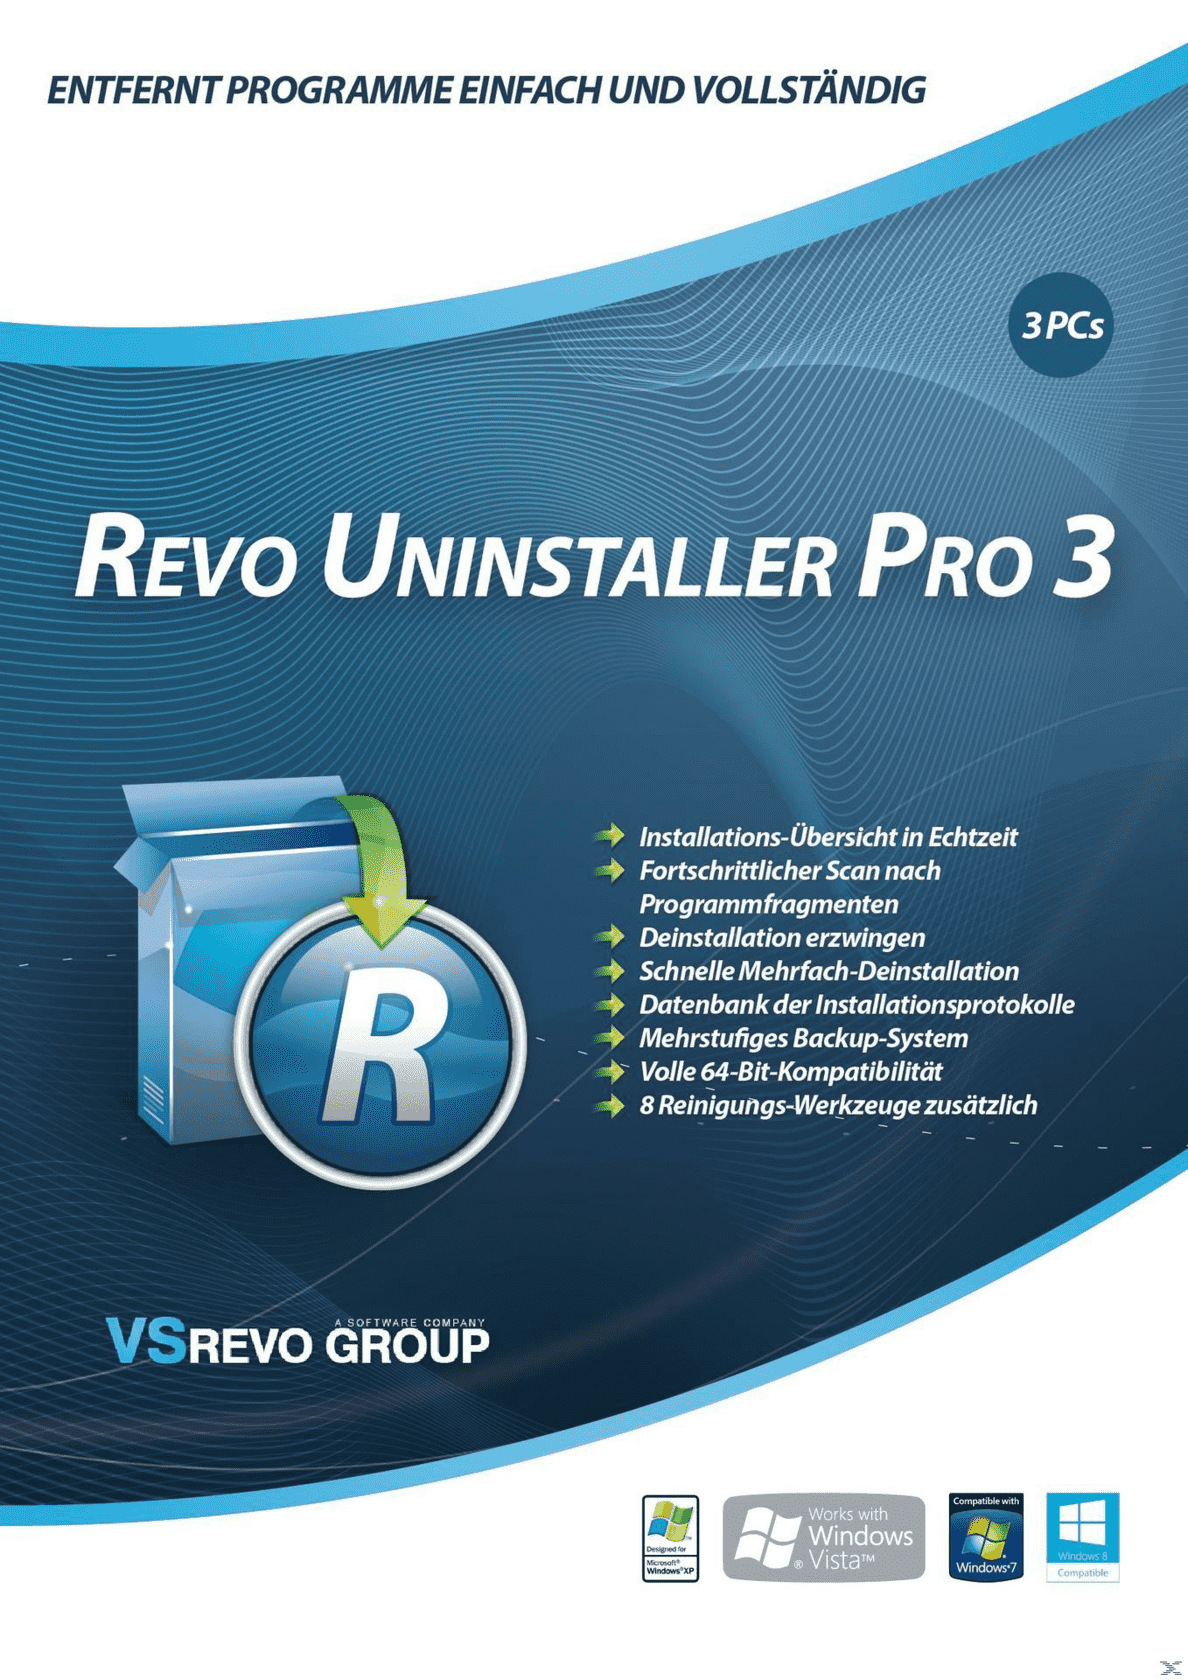 Revo Uninstaller 3 - 3-Platz-Version auf